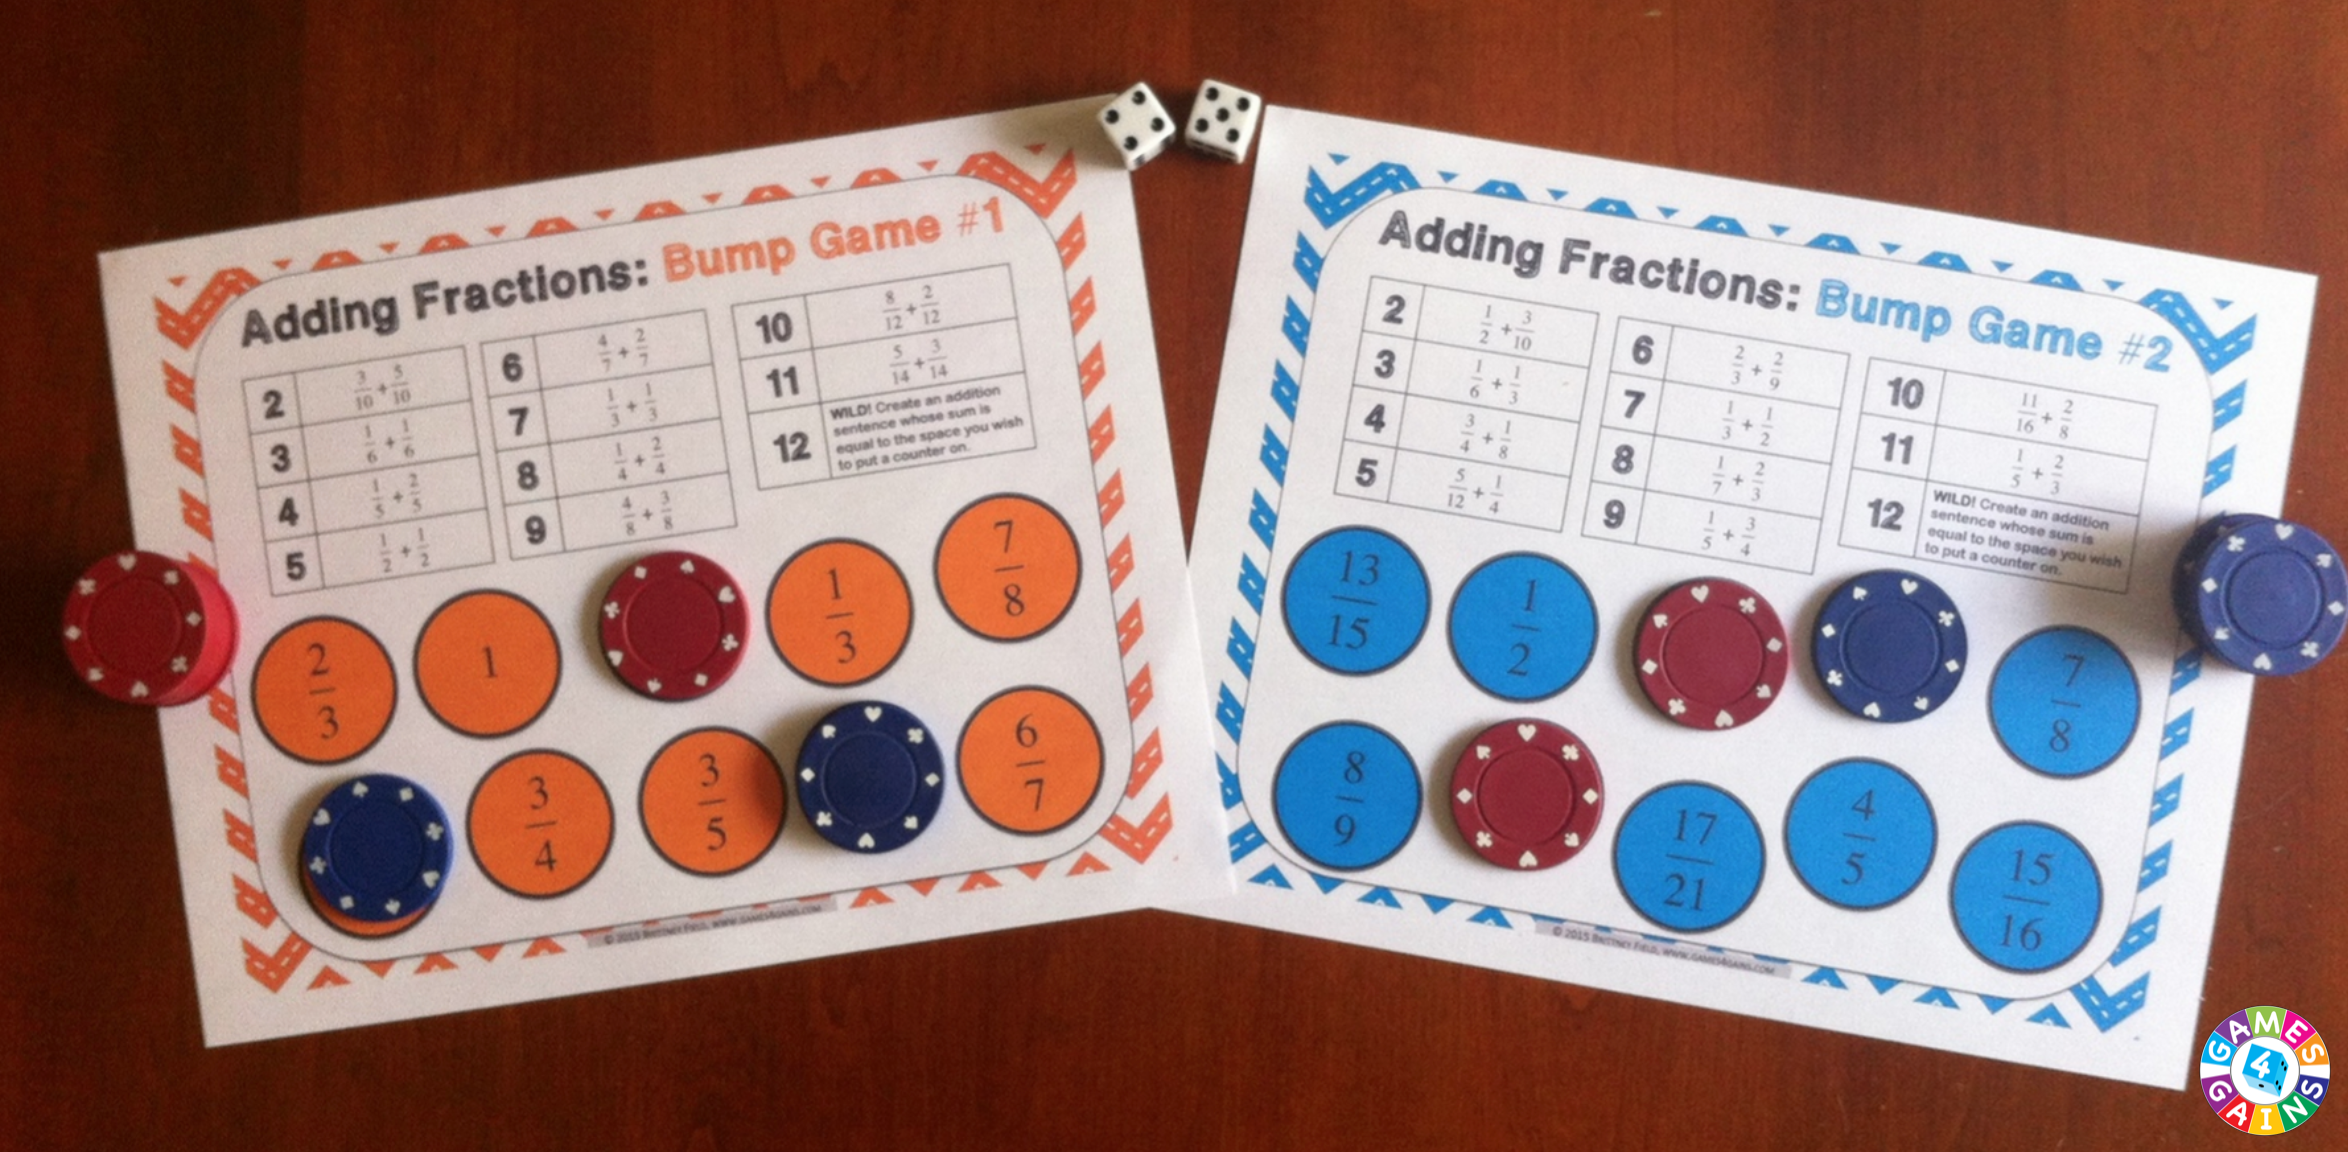 Worksheet Adding And Subtracting Fractions Game Printable bump up the fun with fractions games 4 gains these free adding and subtracting are so simple to use take